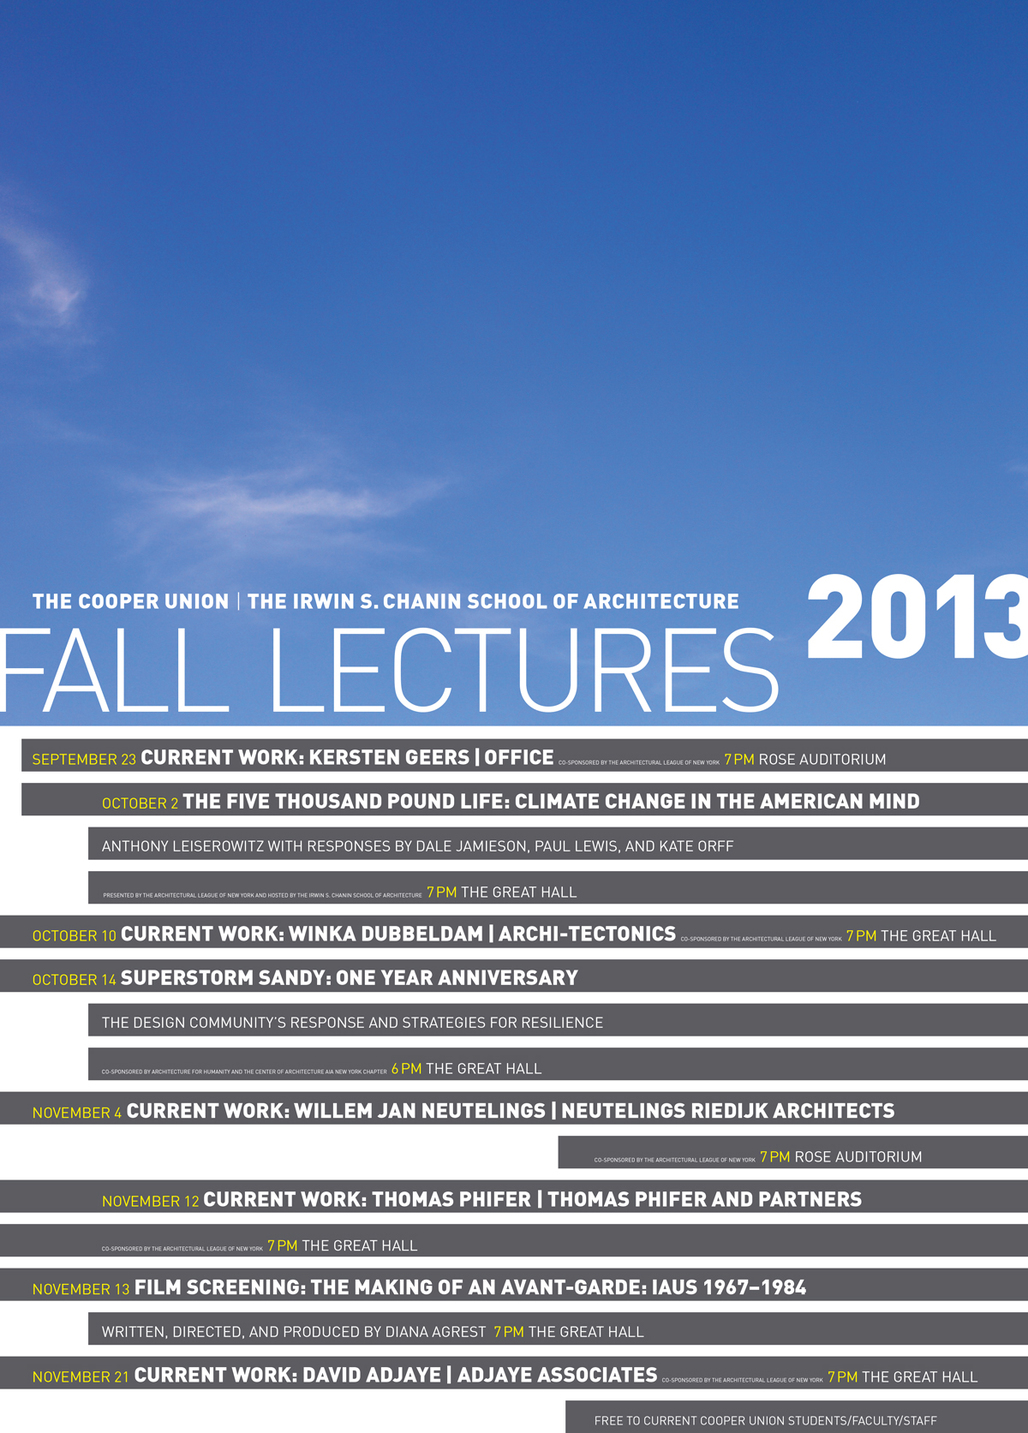 Poster for the Fall 13 Lectures at The Cooper Union, Irwin S. Chanin School of Architecture. Image courtesy of the Irwin S. Chanin School of Architecture.